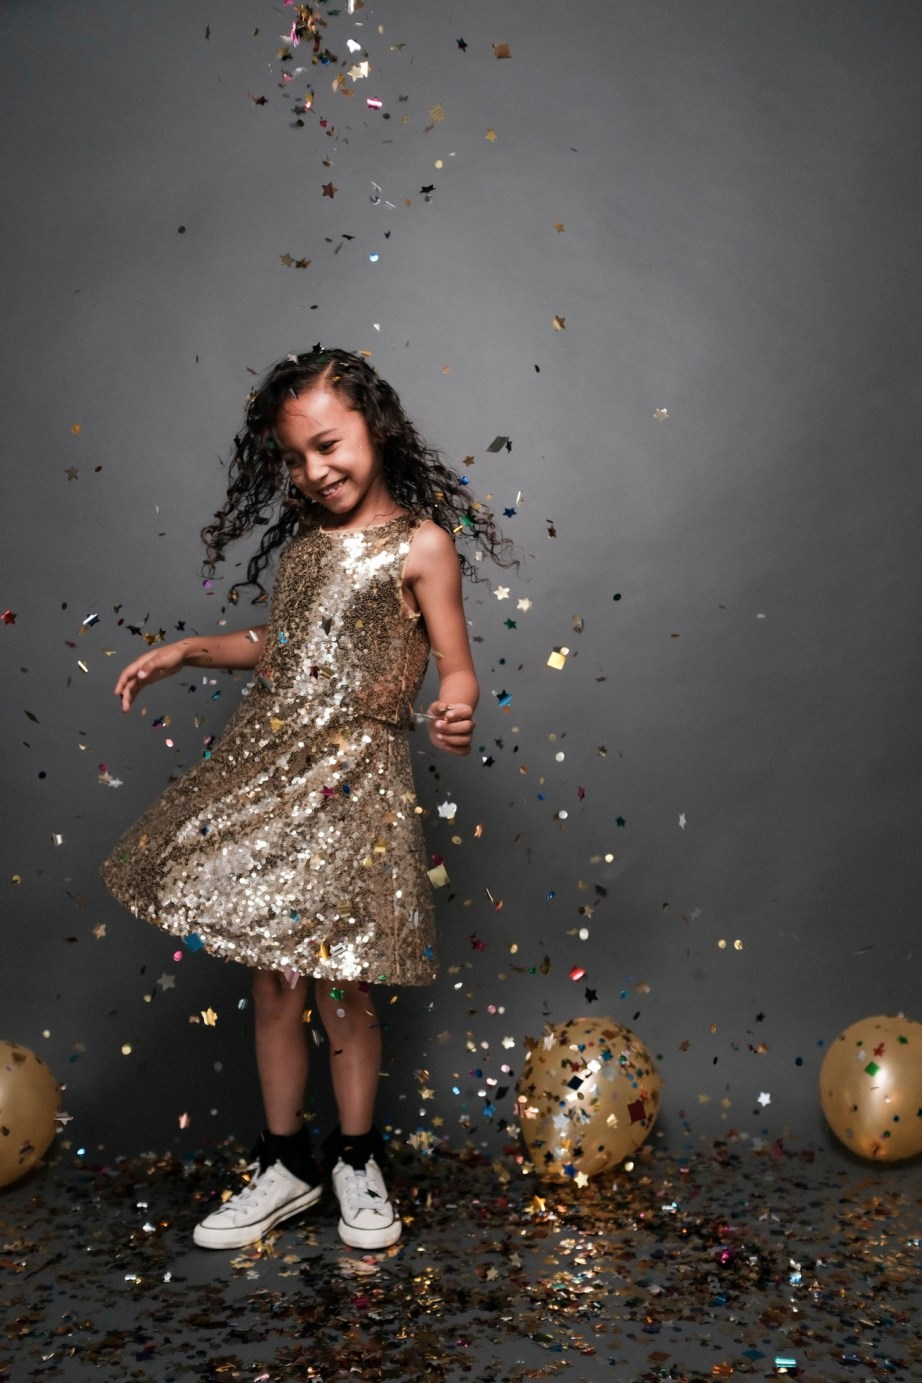 top kids childrens photographer studio orange county 18 nicole Caldwell